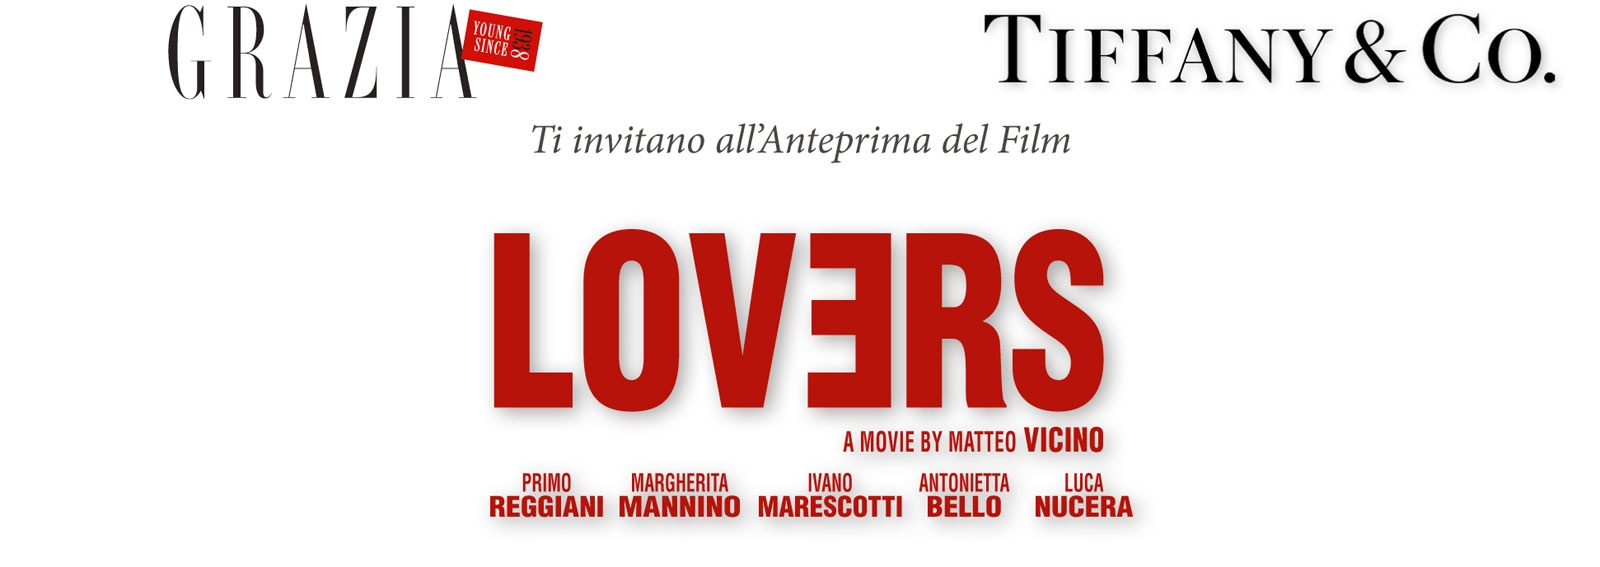 Invito-Lovers-cover-desktop